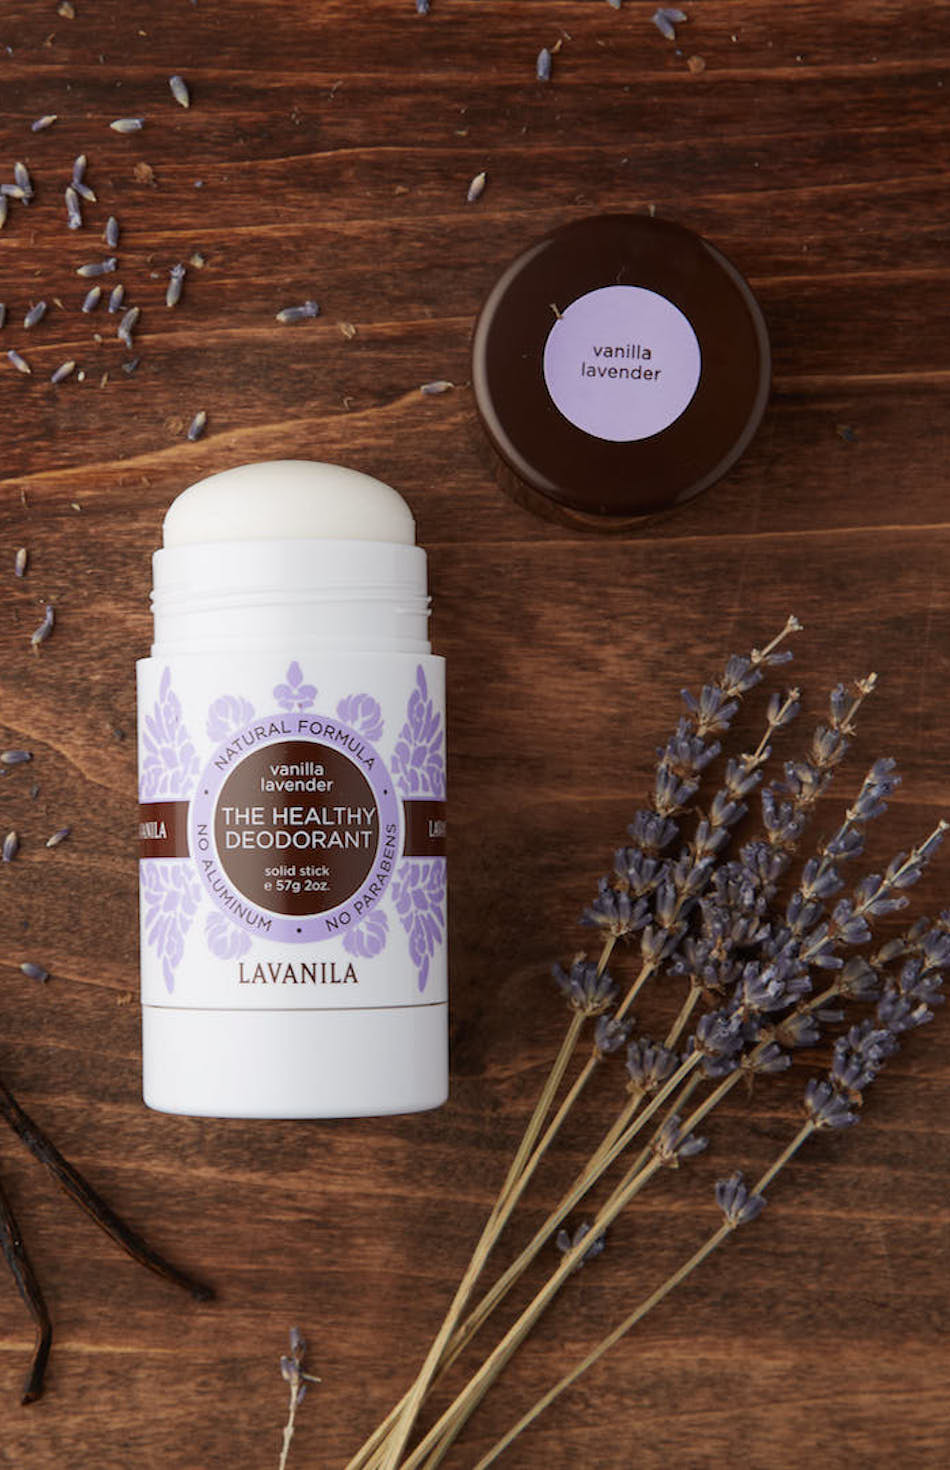 The Healthy Deodorant Vanilla Lavender